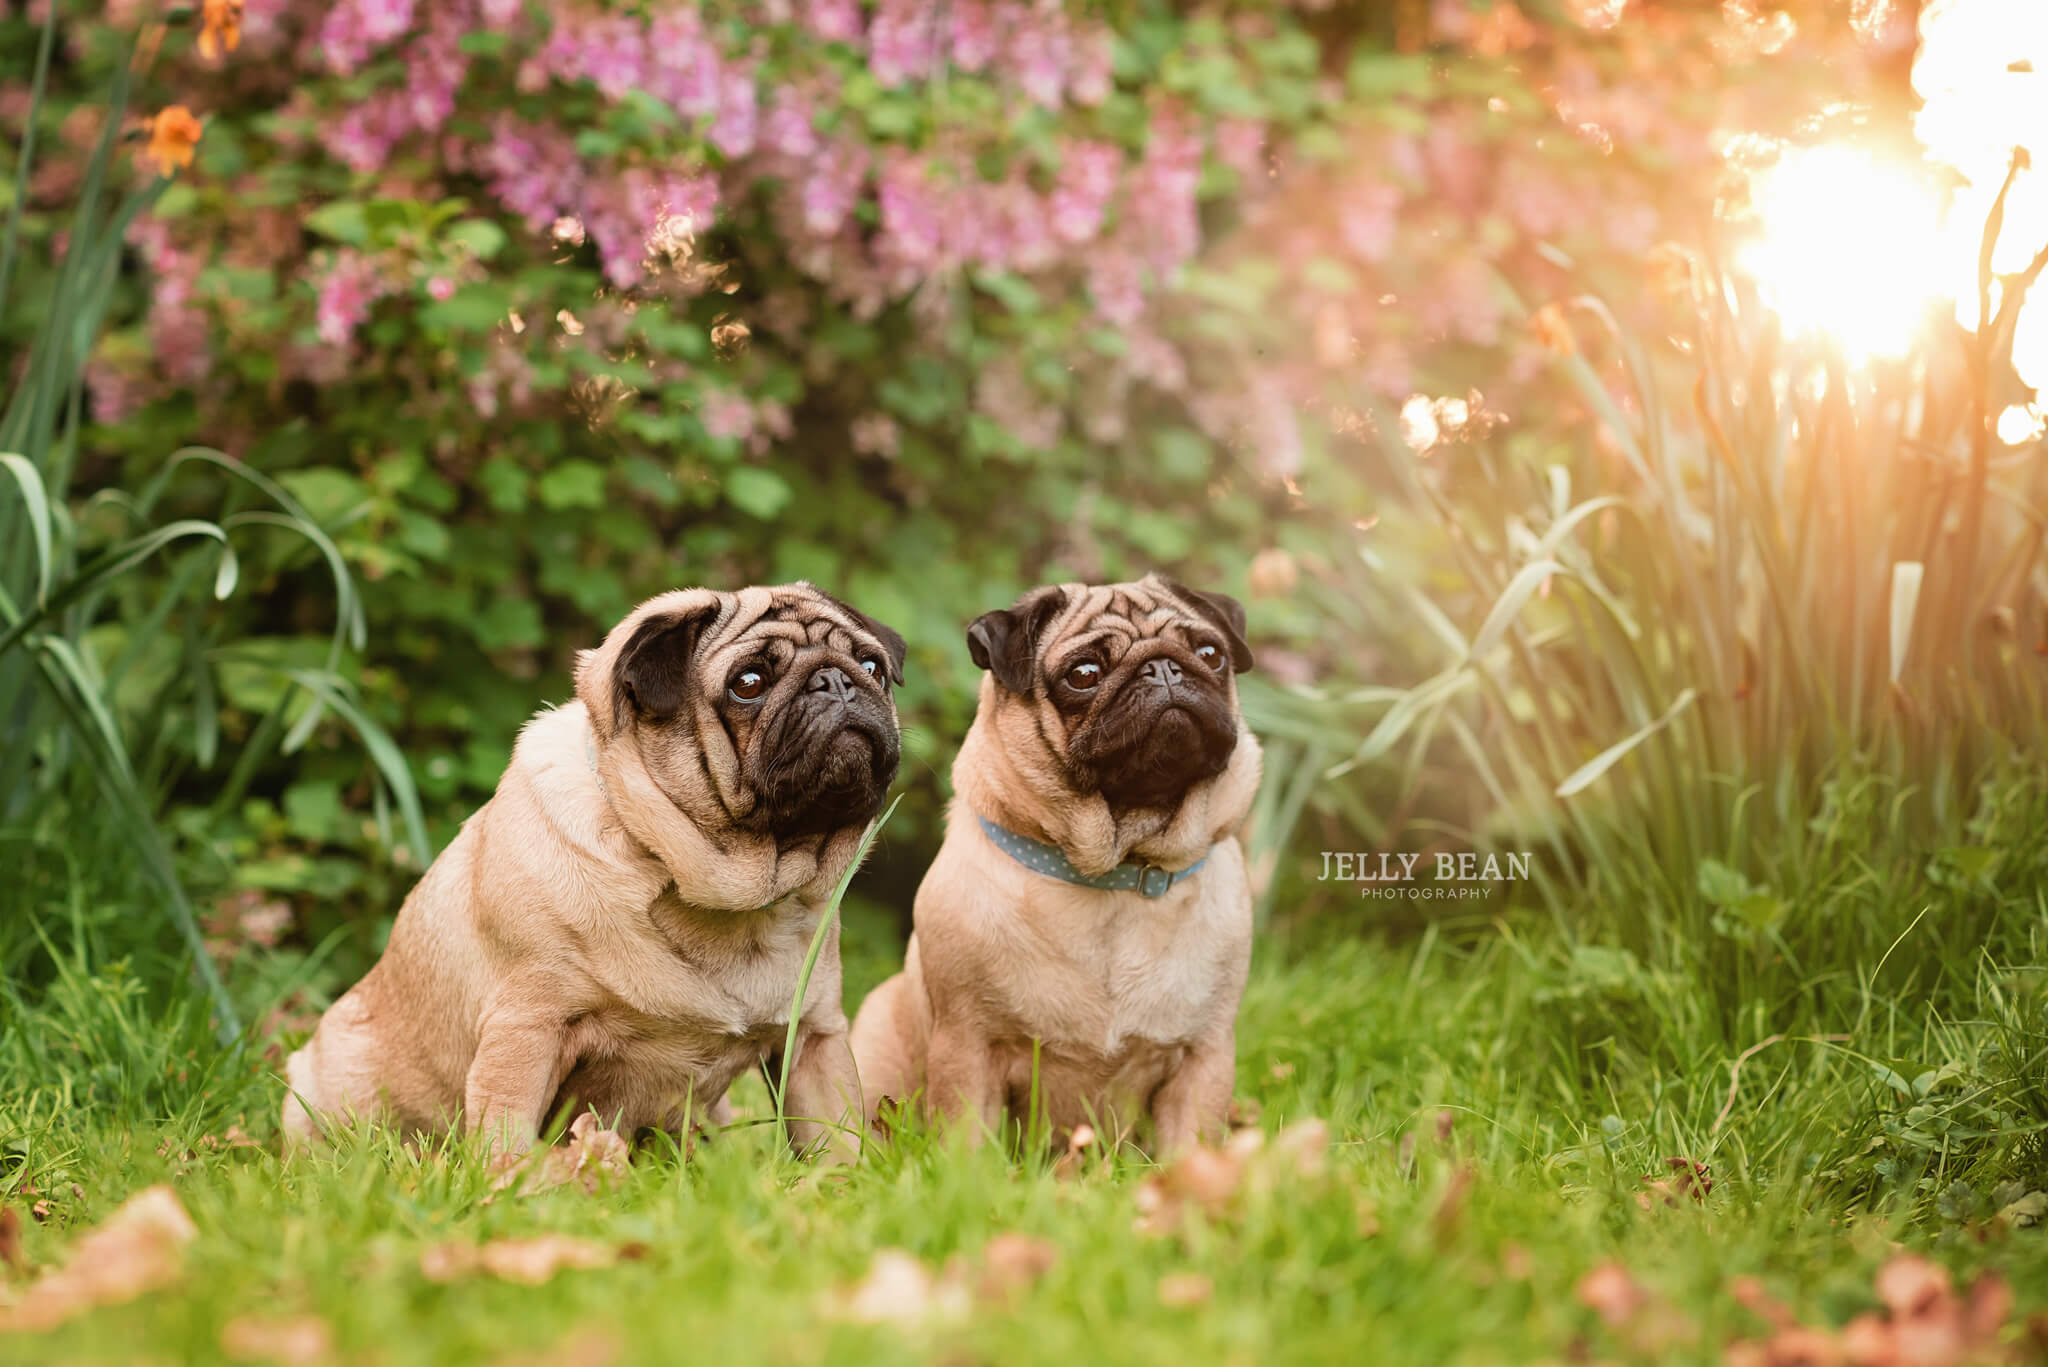 Two pug dogs